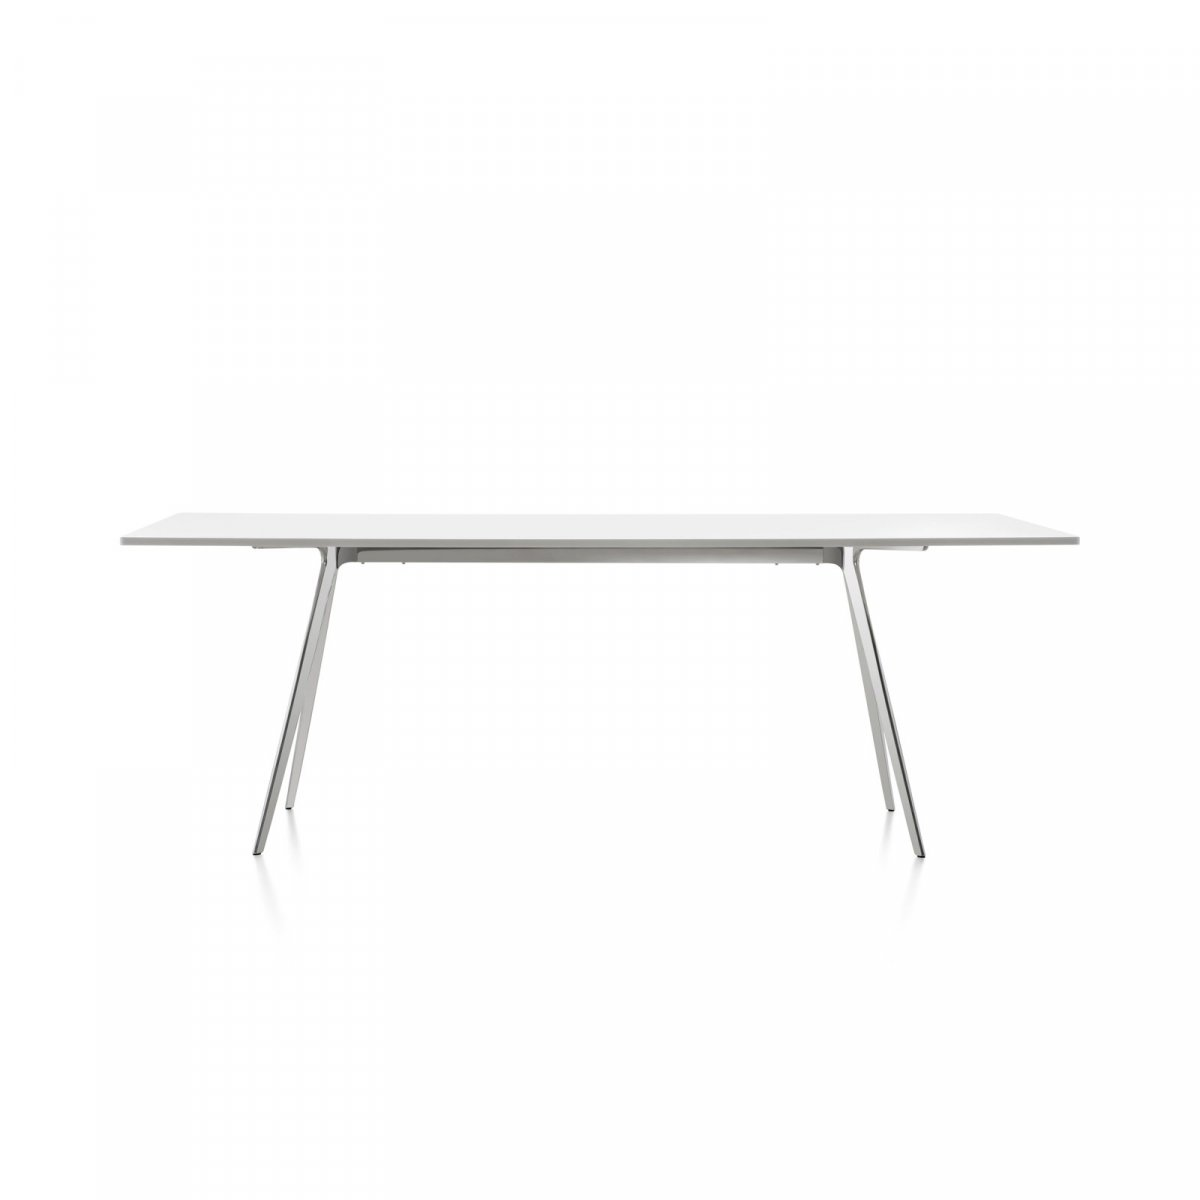 Baguette dining table, with white top and polished legs.